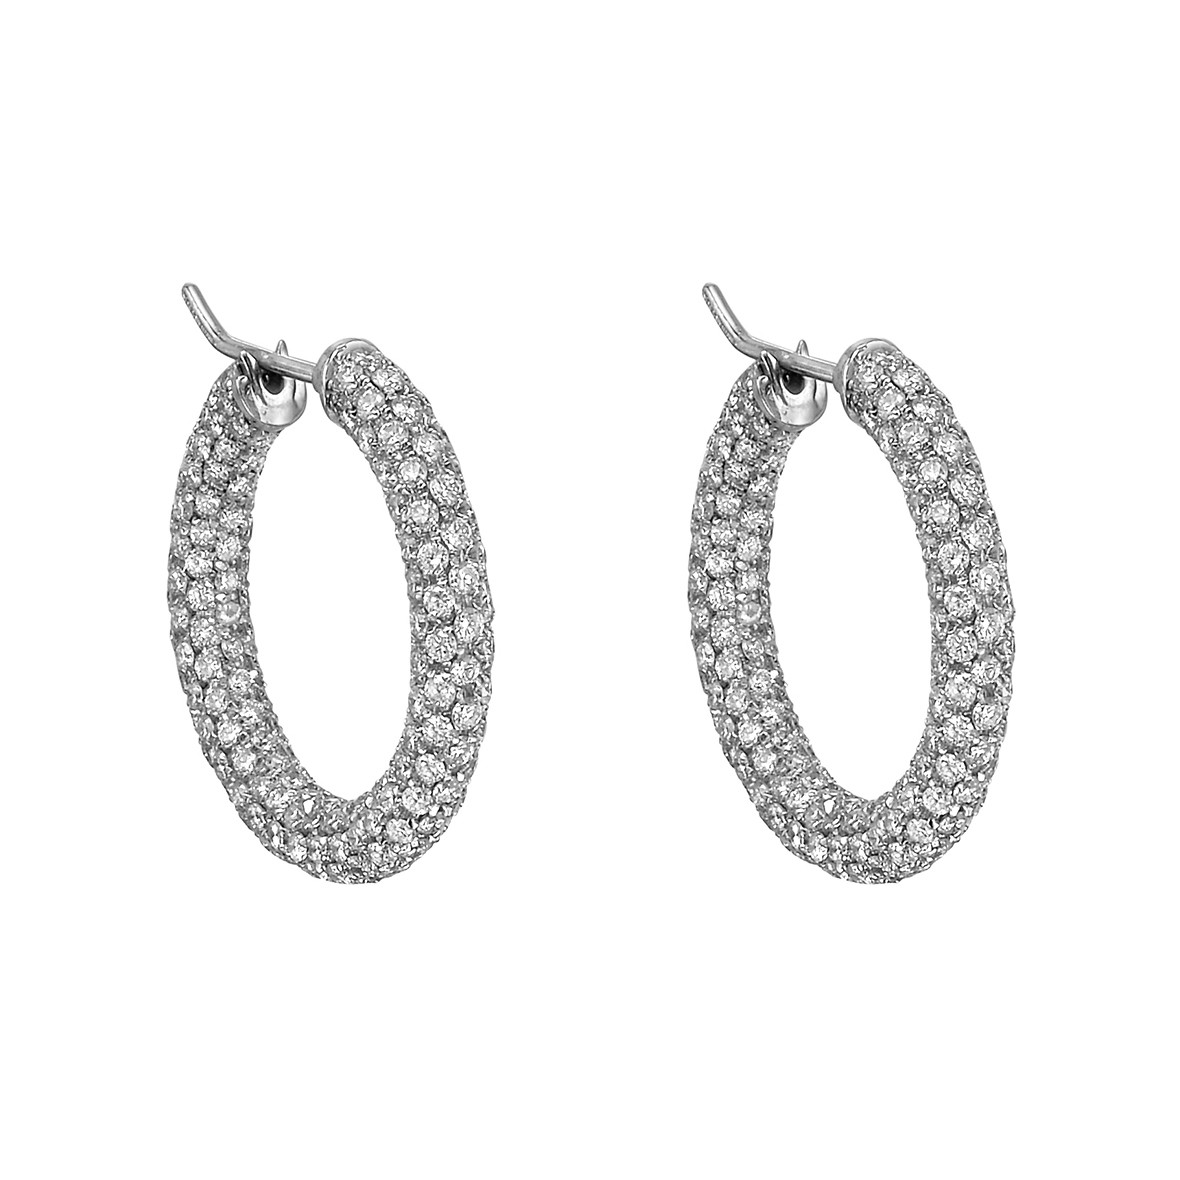 Pavé Diamond Hoop Earrings (~5.3 ct tw)